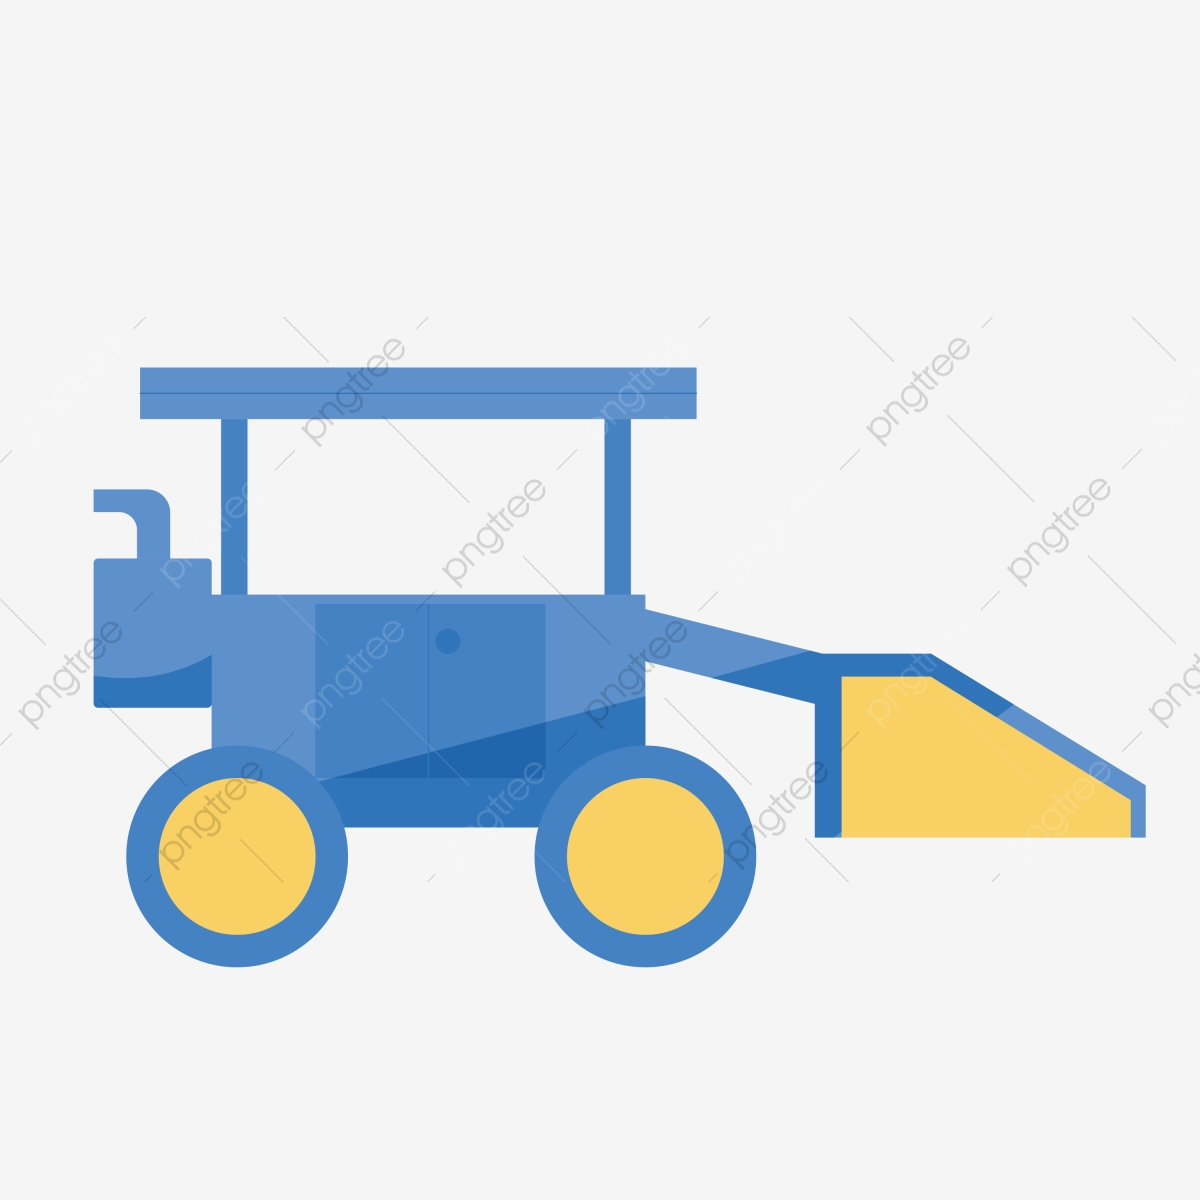 New Holland T7070 Tractor , Free Transparent Clipart - ClipartKey